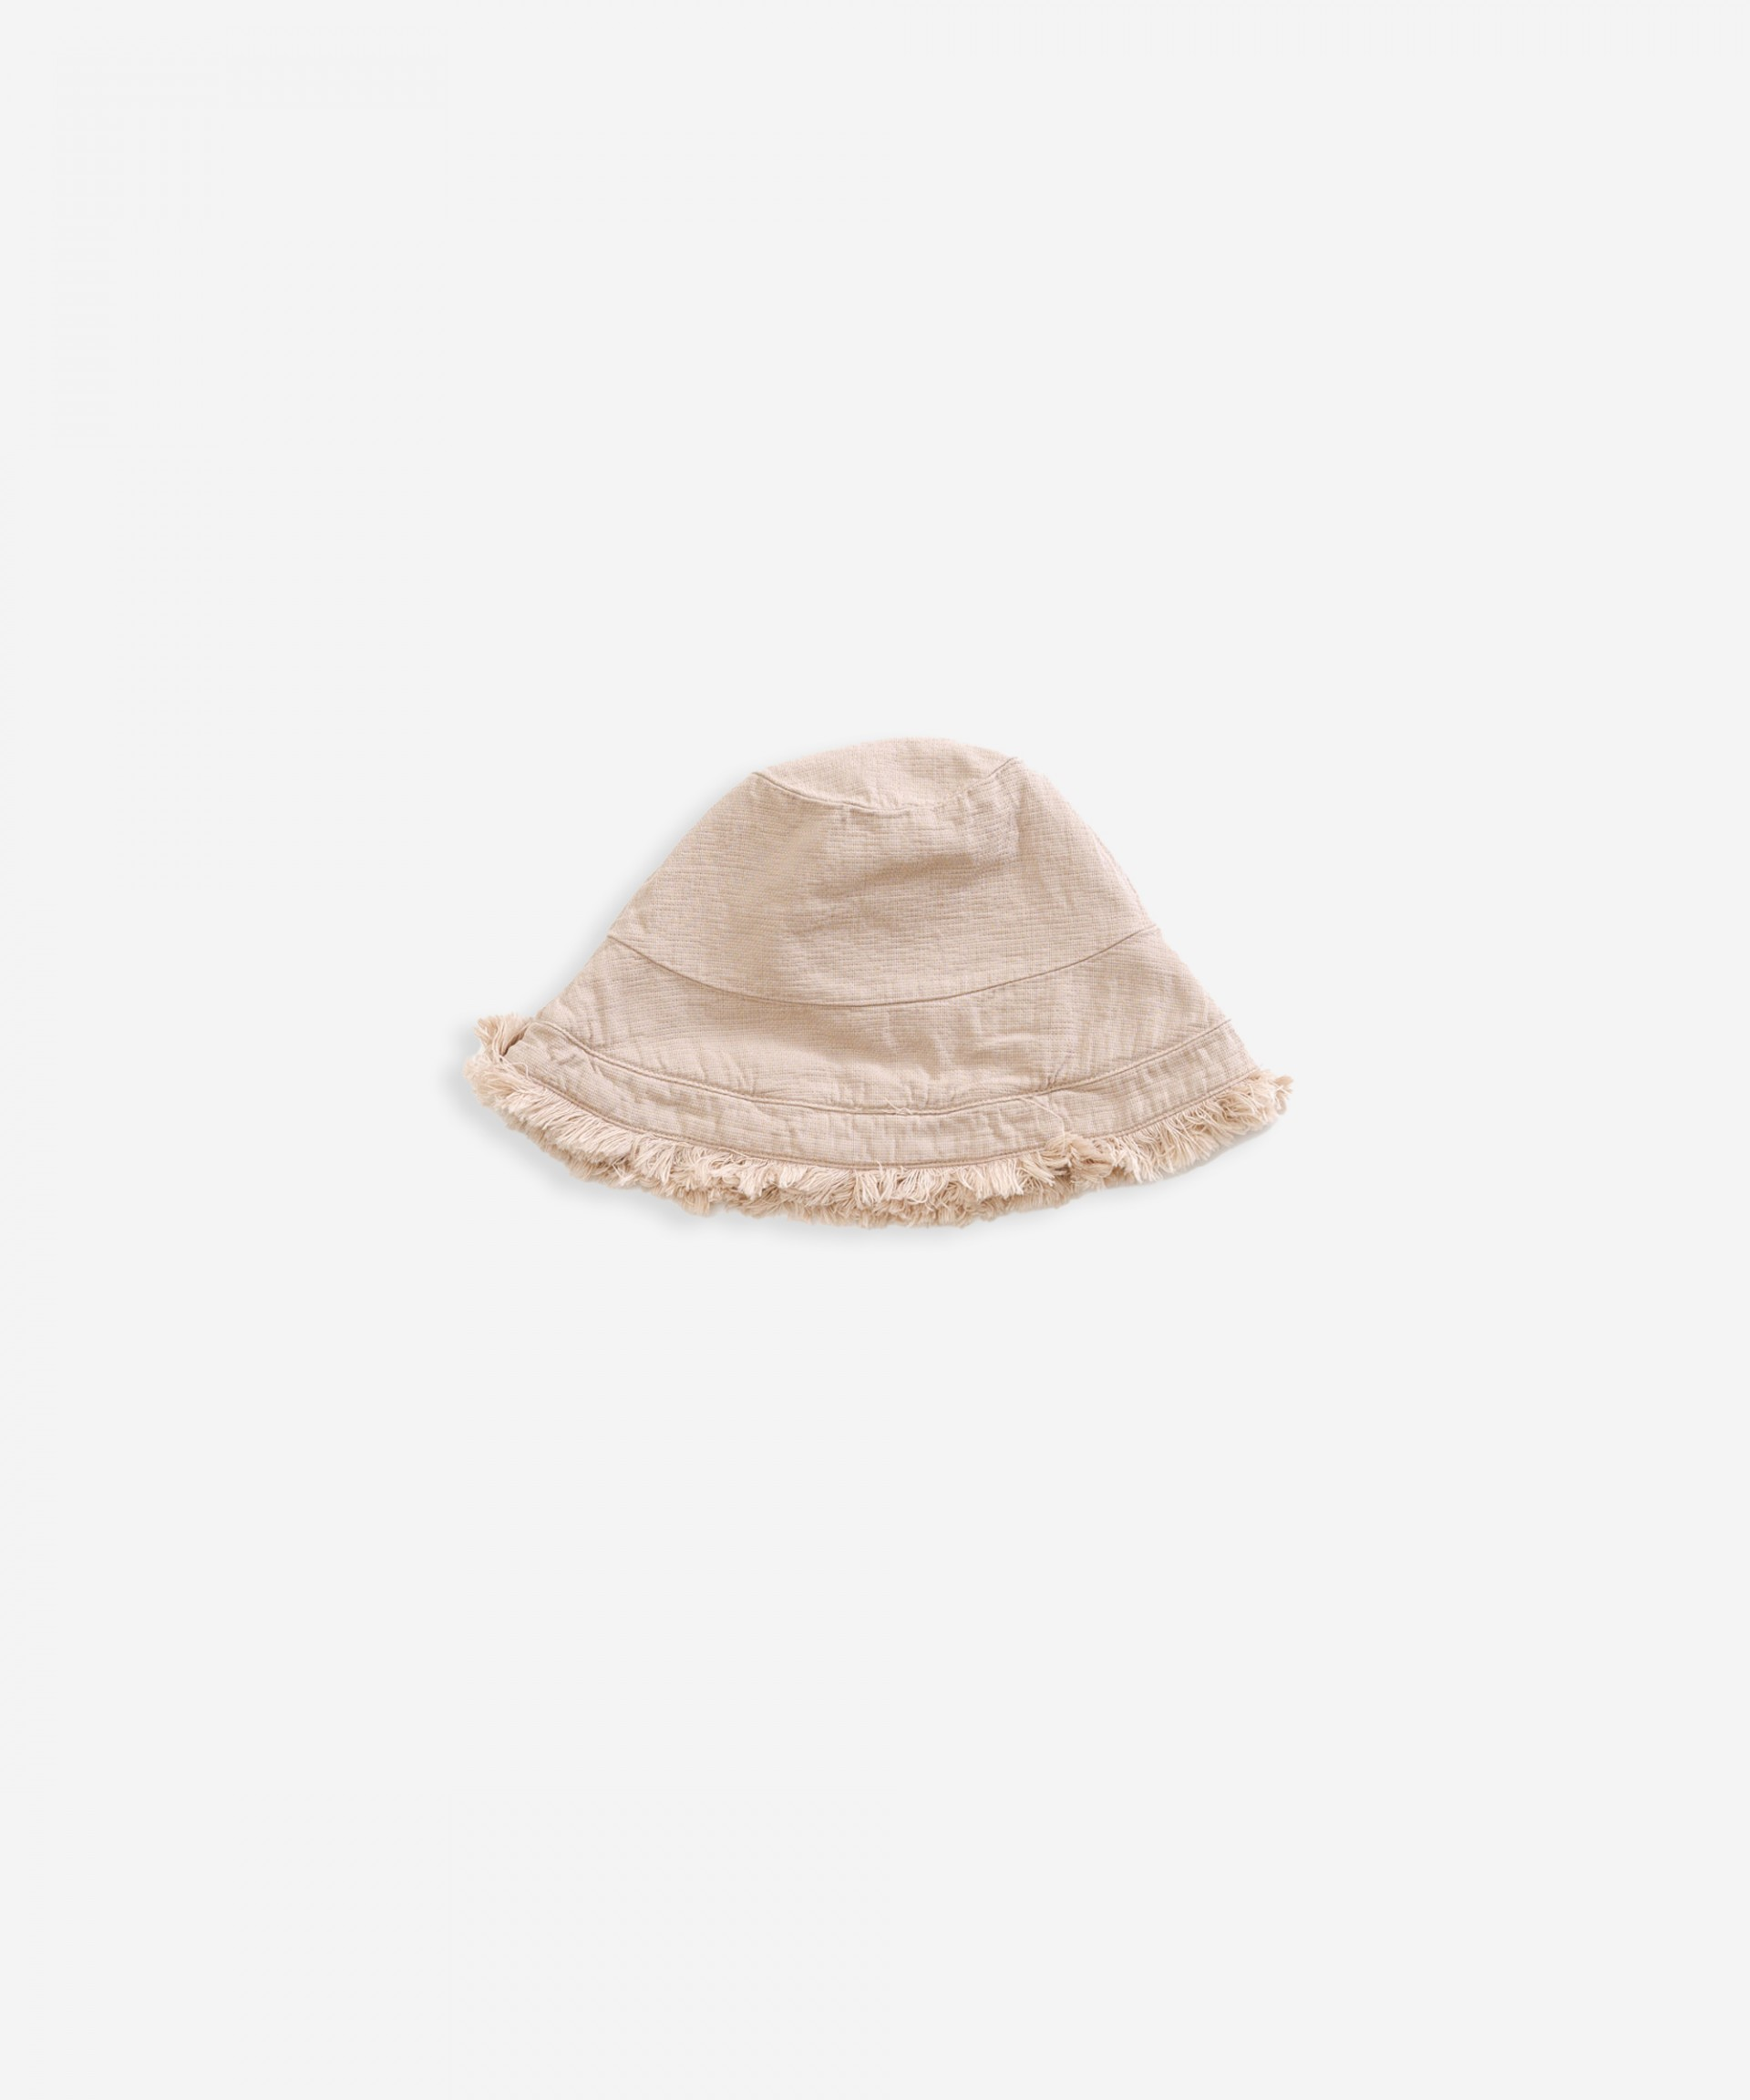 Linen hat | Weaving